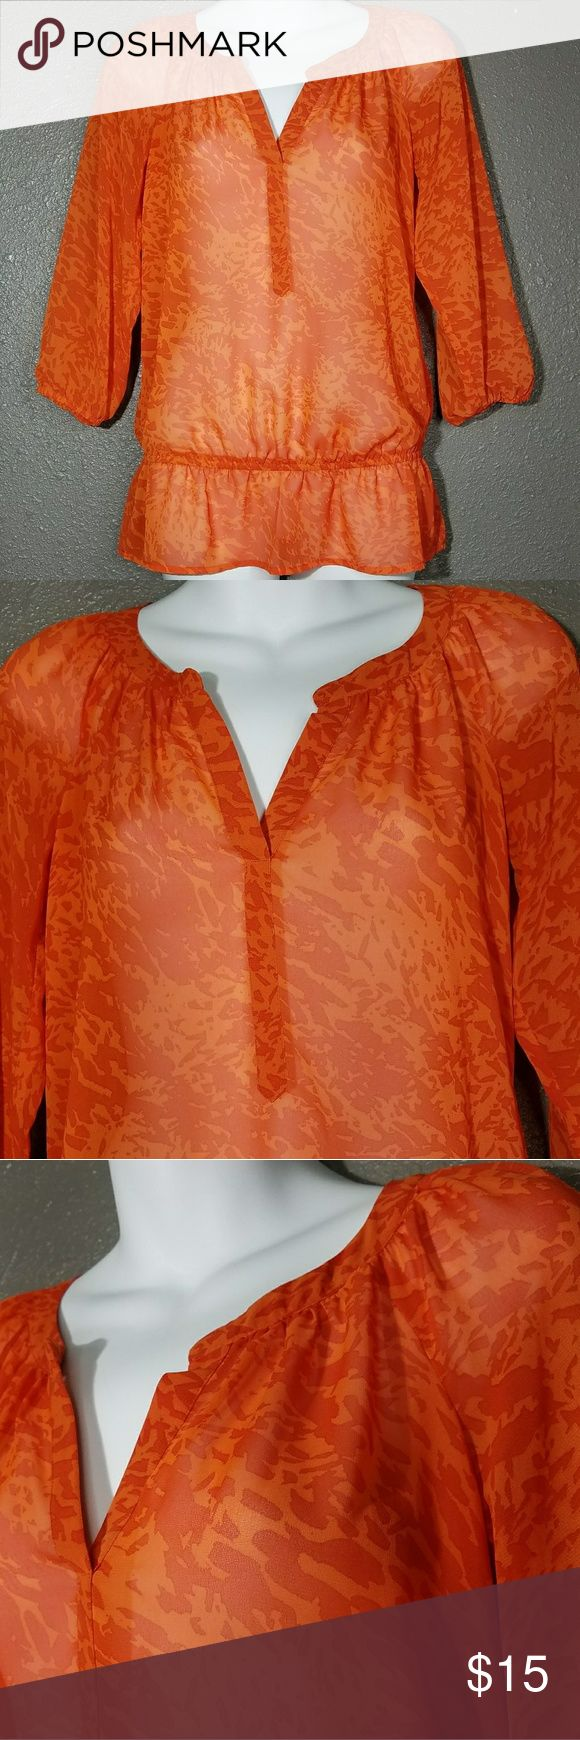 "Ann Taylor LOFT XXSP Petite Orange 2XSP Ann Taylor LOFT XXSP Petite Blouse Top Orange Loose Lightweight Semi Sheer 2XSP   Excellent used condition!    Flat Lay Measurements Unstretched  Underarm to underarm: 19""  Length: 26""   Comes from a smoke and pet free home!  Ann Taylor Tops"